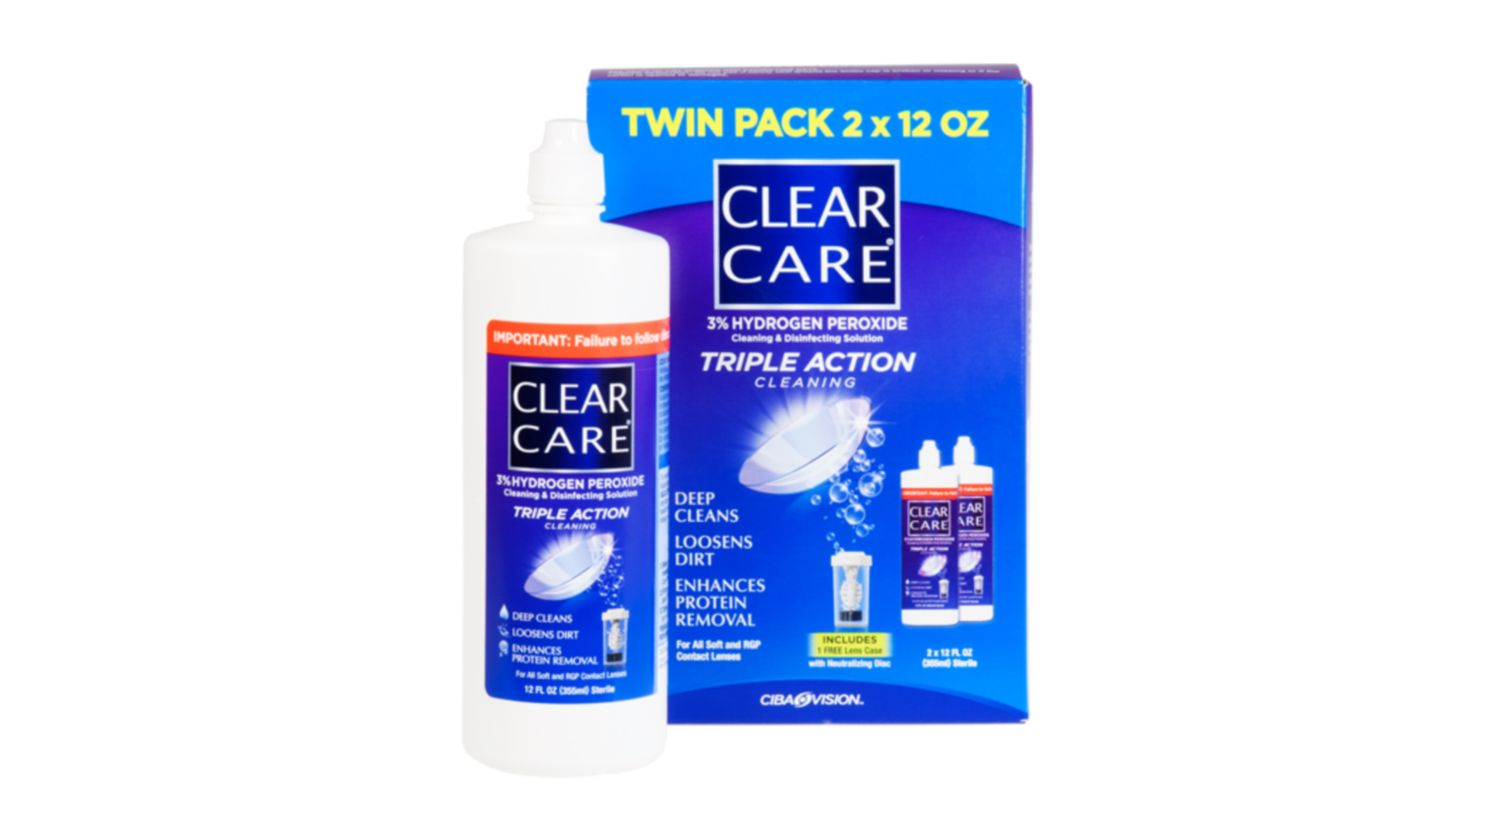 CLEAR CARE 2 pack